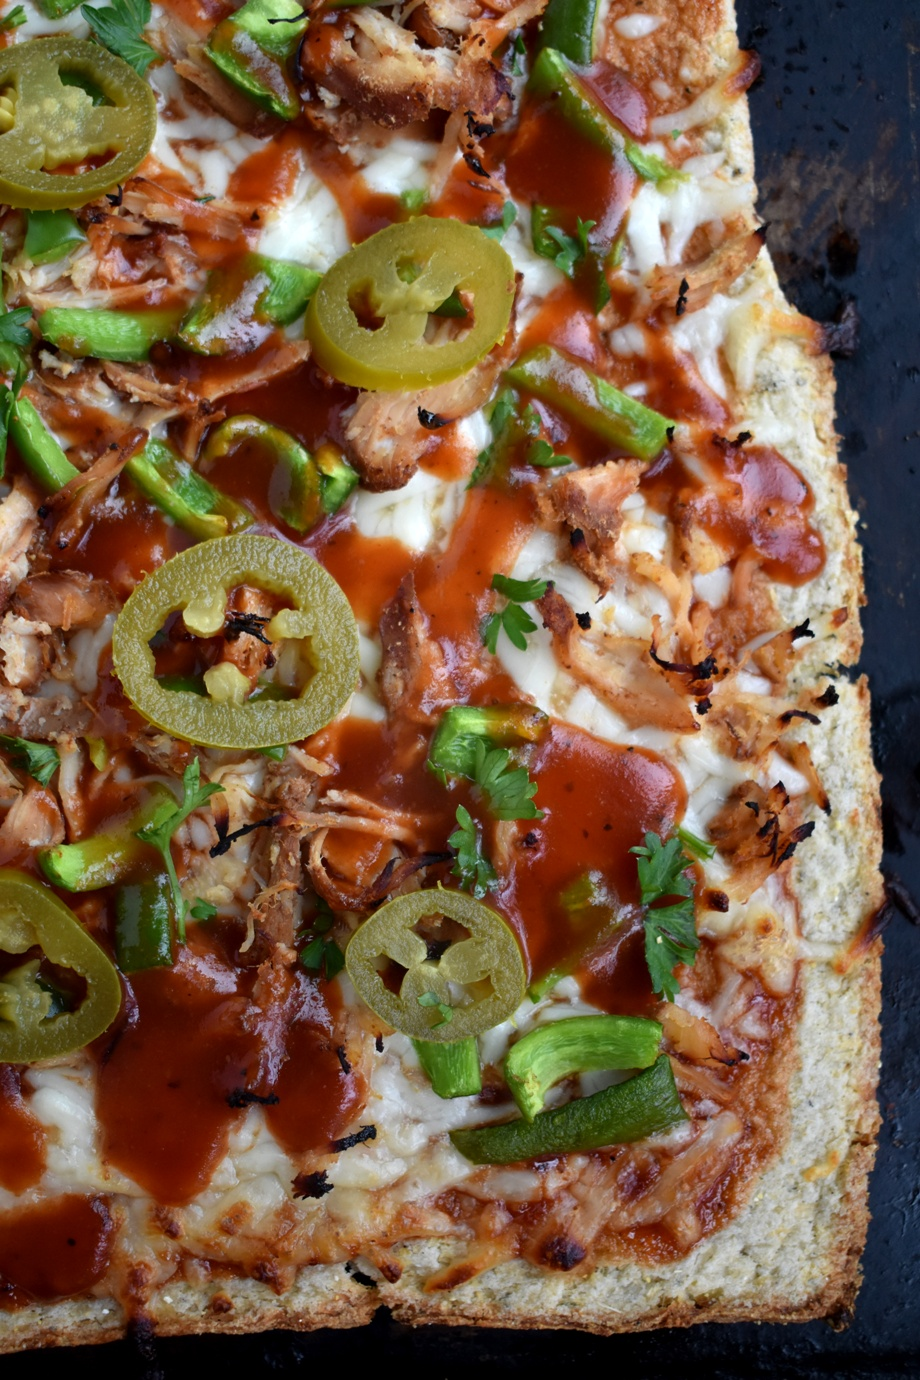 BBQ Chicken Pizza with Cauliflower Crust is nutritious with an 80% cauliflower crust and is topped with shredded chicken, BBQ sauce, mozzarella cheese, bell peppers and jalapenos! www.nutritionistreviews.com #pizza #bbq #cauliflower #healthier #dinner